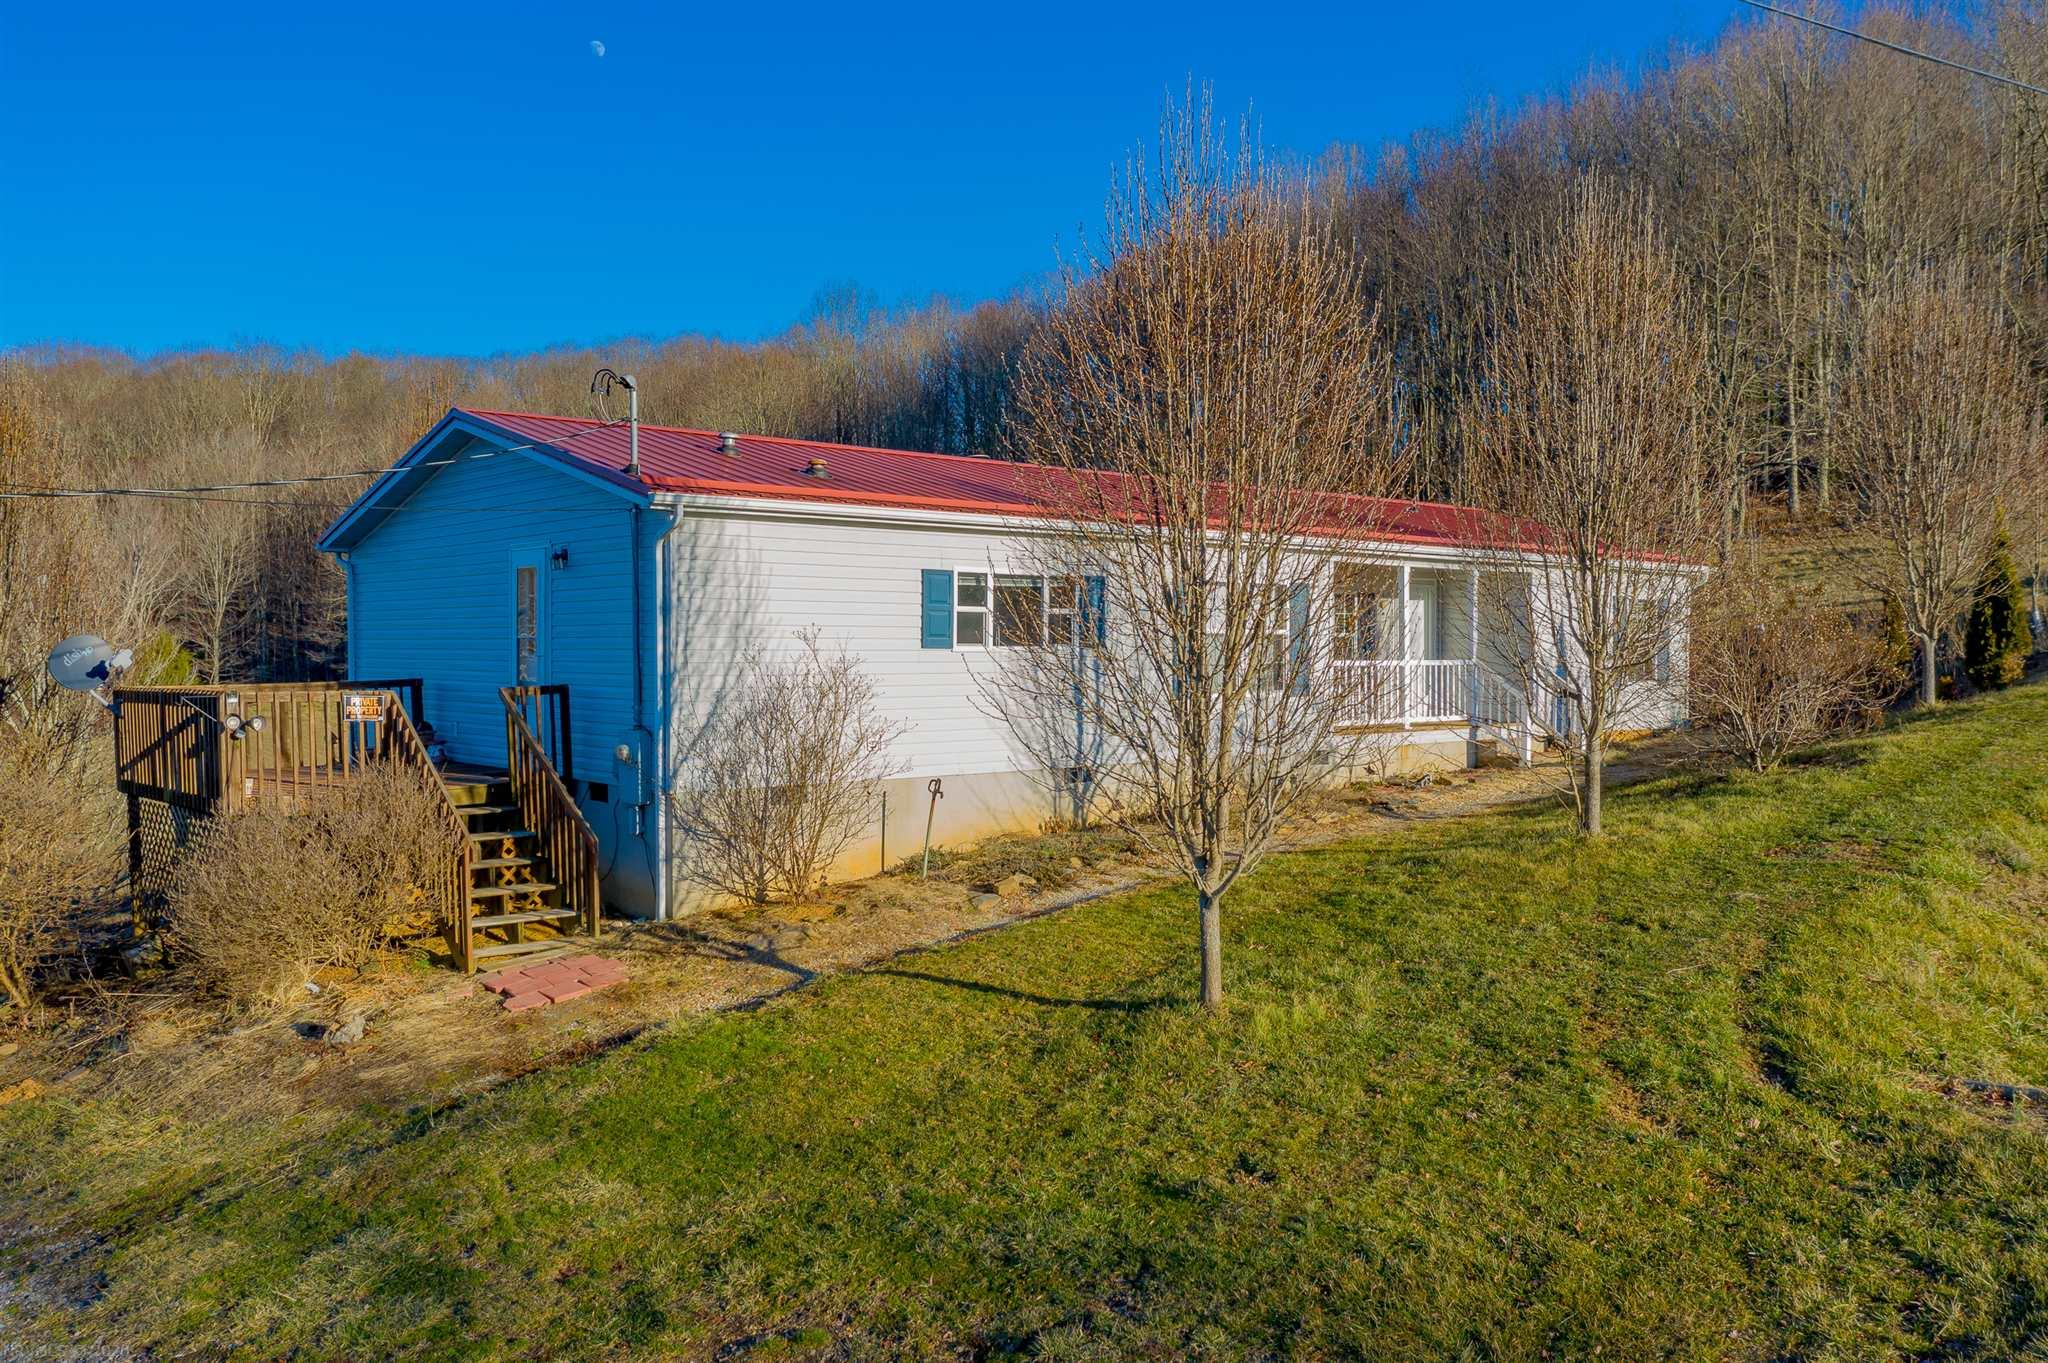 Looking for a view on a budget? Checkout the beautiful scenery from the back deck of your porch, while still being two miles from I-77, just minutes from the town of Bland, and 20 minutes to the town of Wytheville. With 1515 square feet, 3 bedrooms, 2 baths, and spacious open floor plan, as well as a roomy master suite with his and hers vanity, there's enough room for all of your needs. Less than 14 years old, enjoy low maintenance living with a heat pump to keep you cool through the sunny summers, and warm during the beautiful winters, with a corner fireplace to cozy up next to. See what not just this property but the rural living has to offer with National Forest and recreational opportunities just minutes away. With all appliances included, and the possibility to purchase fully furnished, this home is truly move in ready. Schedule your private showing today and see what all this nearly 2 acre property has to offer! Current owner loves the home and area, but is needing to relocate.